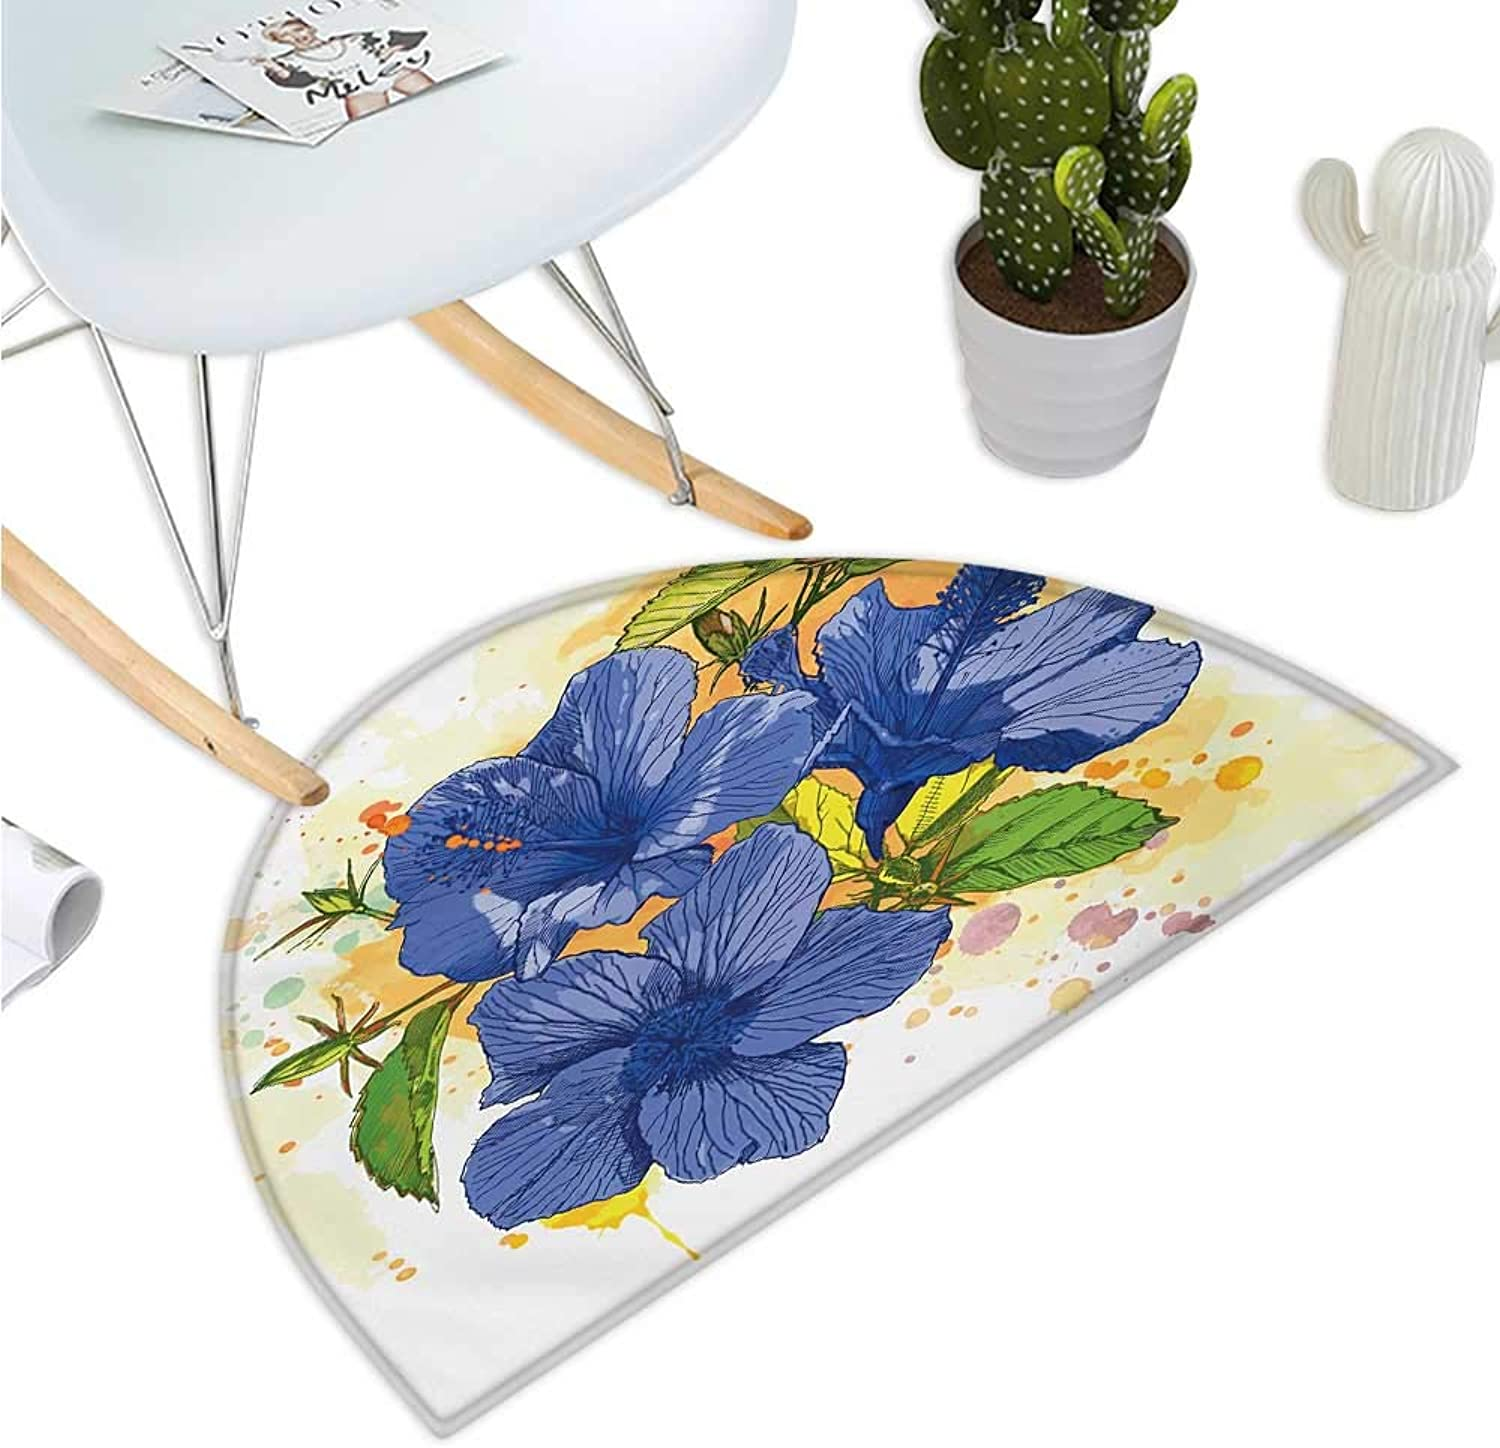 Tropical Half Round Door mats Hibiscus Flourishes Exotic Foliage Organic Bouquet Watercolor Bathroom Mat H 47.2  xD 70.8  purple bluee Mustard Green White